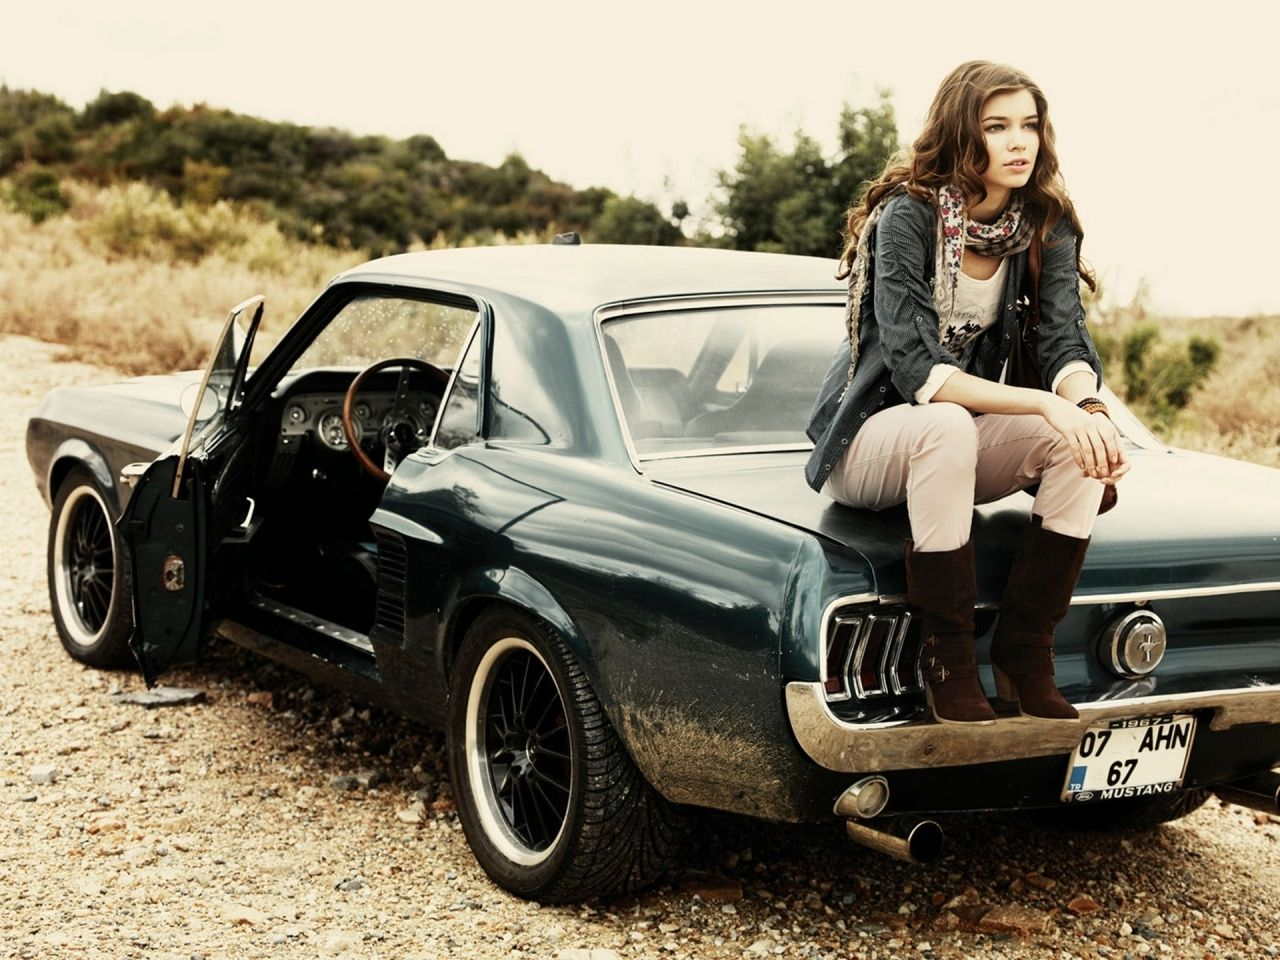 ford mustang 67 wallpaper 7ixc55kek